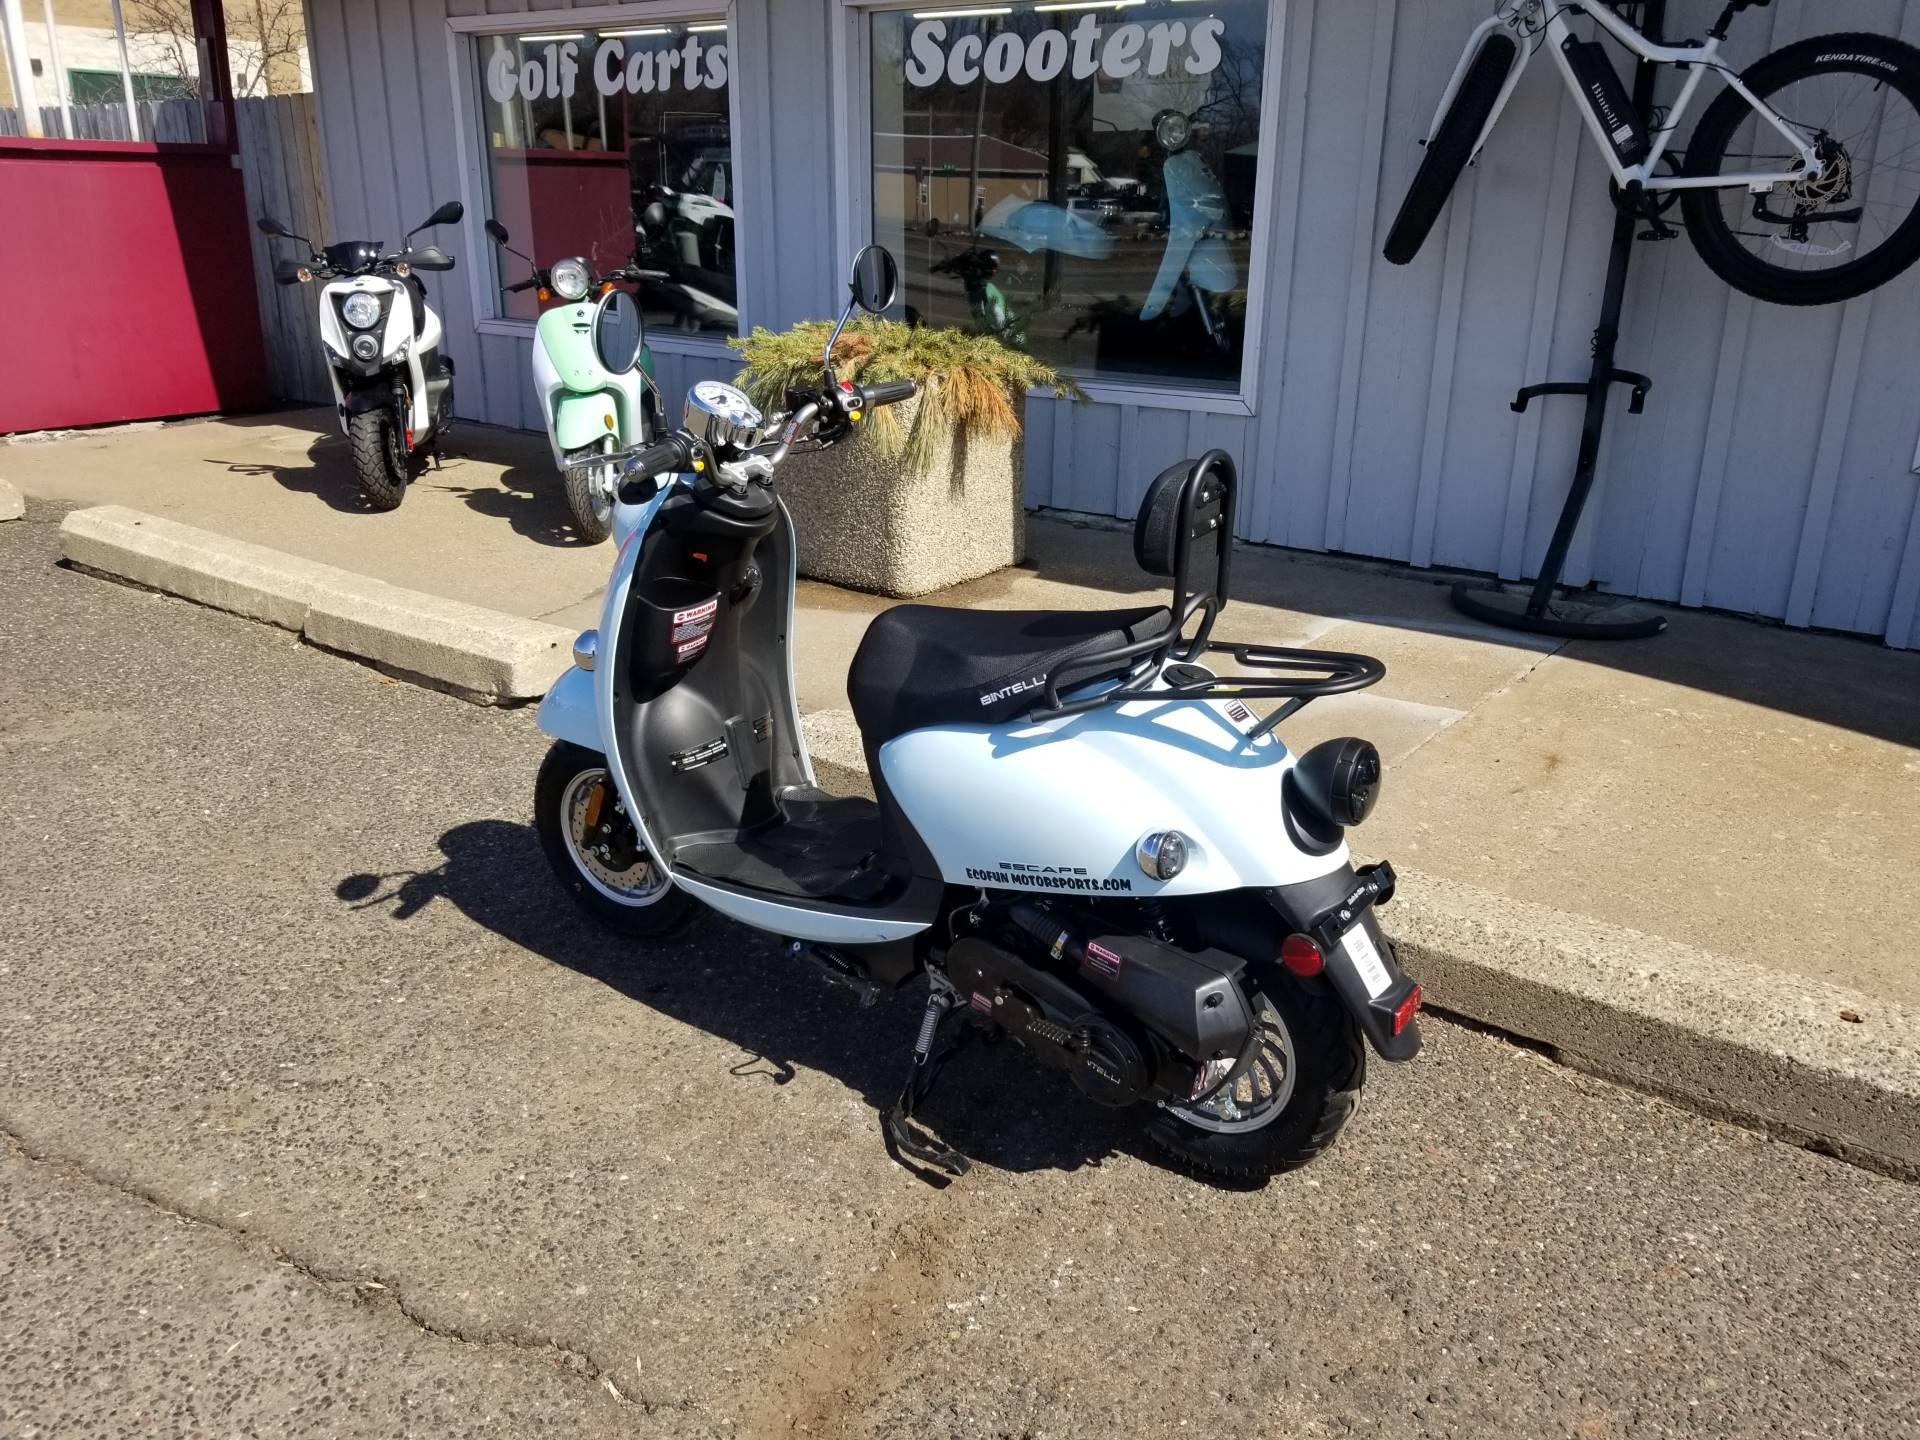 2021 Bintelli  Escape 49cc Scooter in Forest Lake, Minnesota - Photo 5